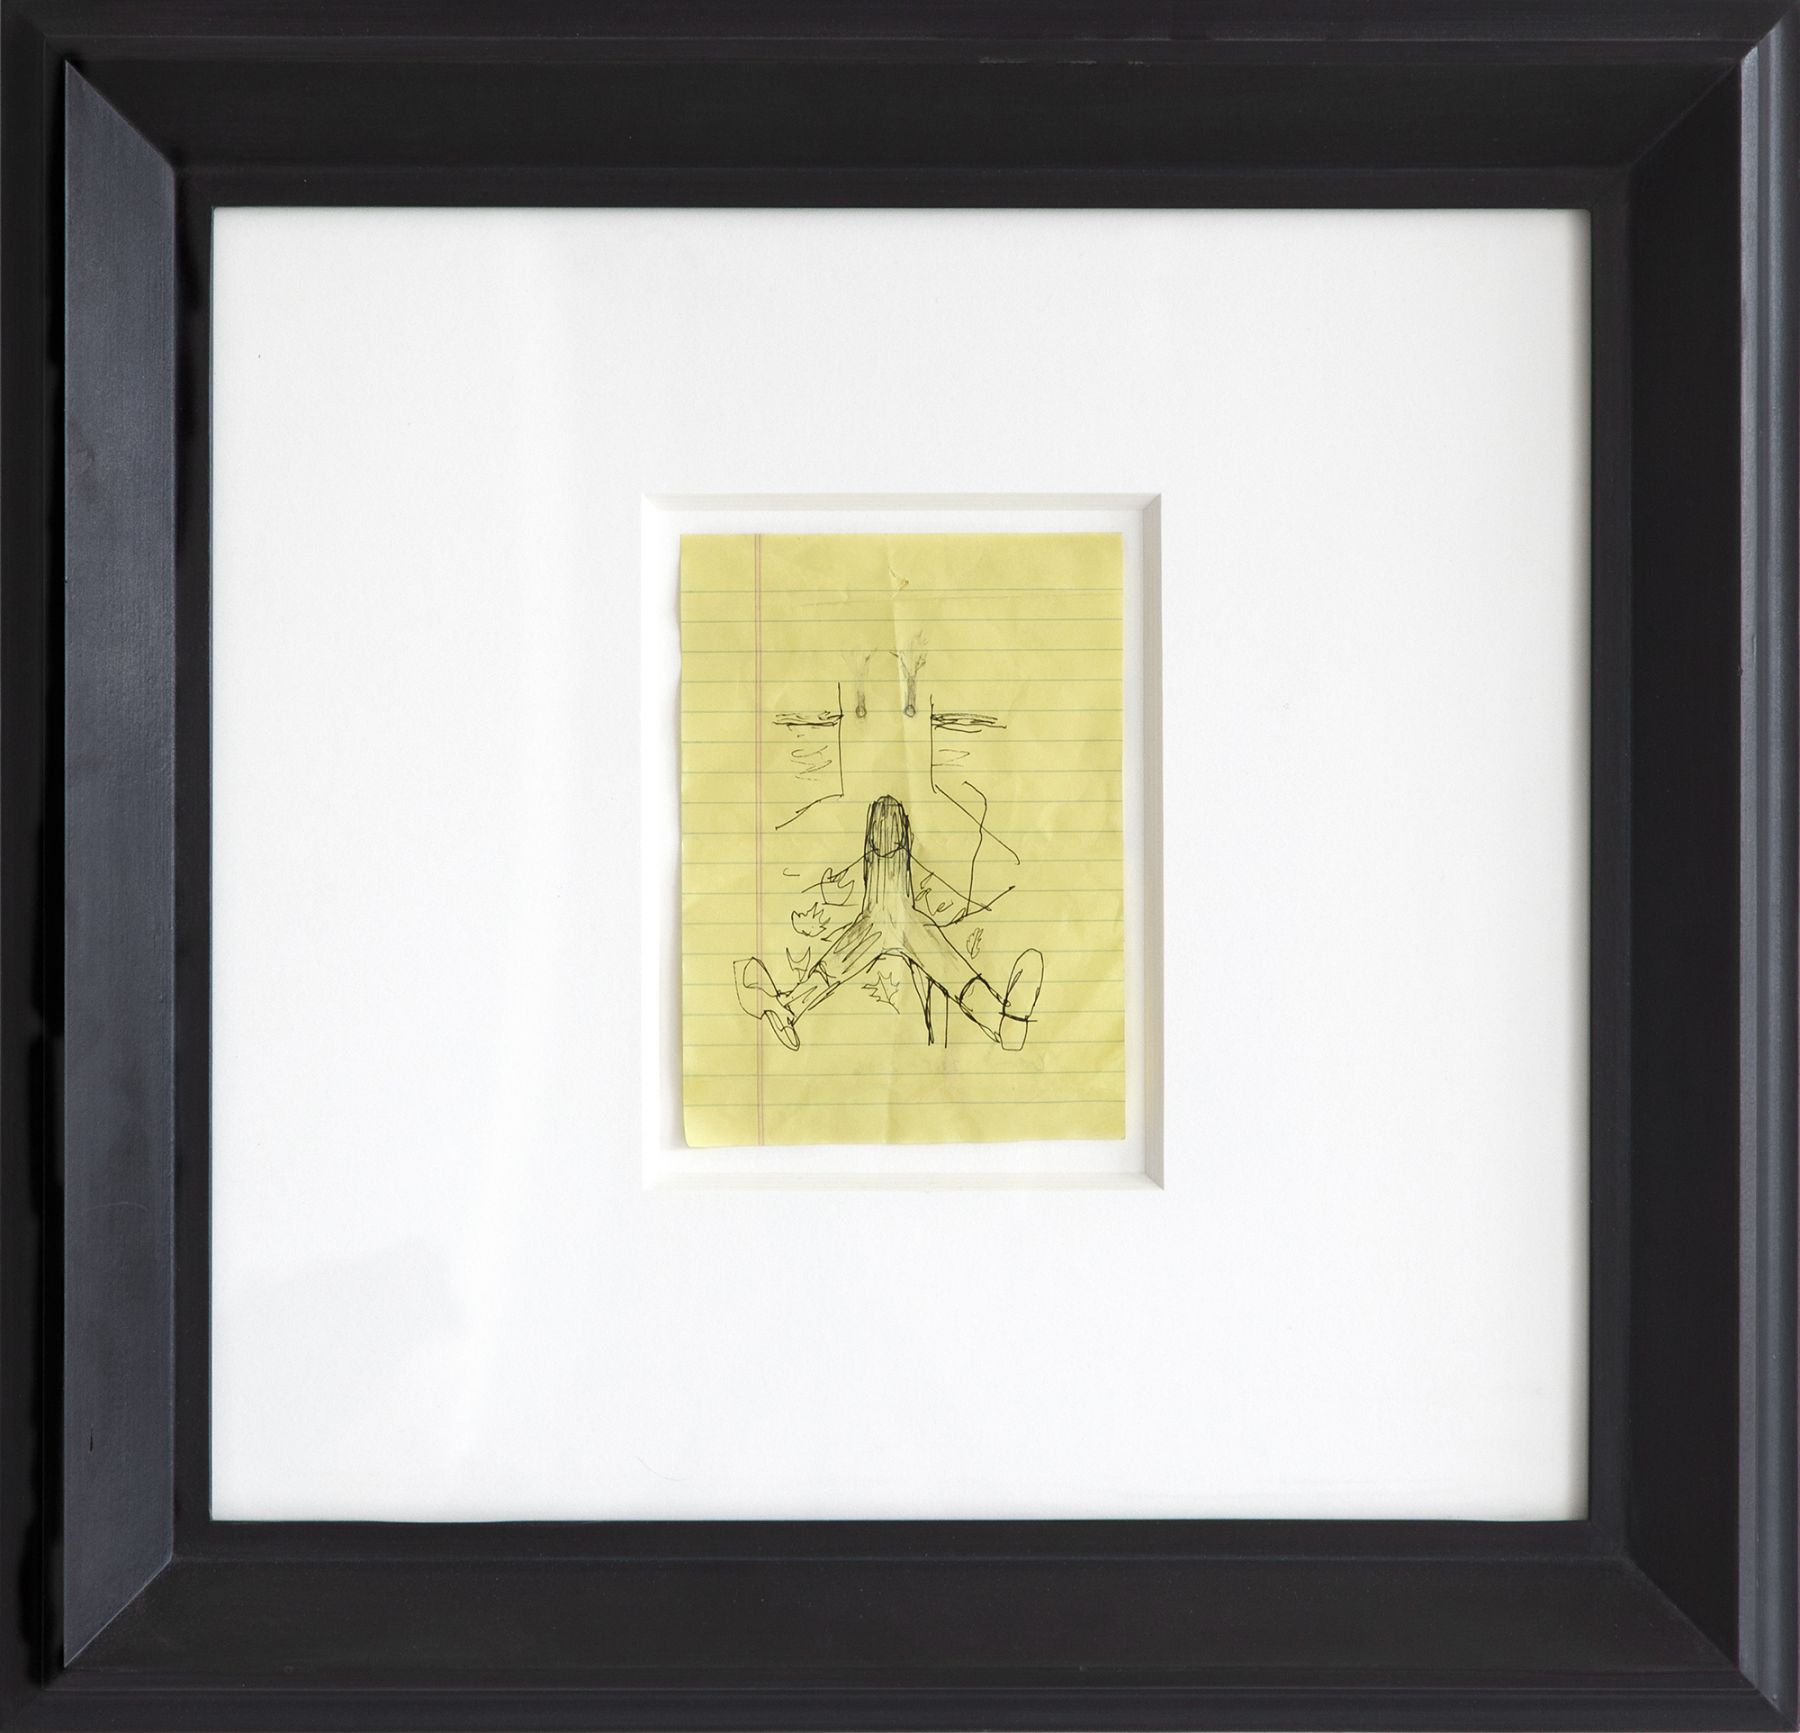 Robert Gober Untitled Study, 2005-2006 Ink and graphite on paper Paper: 7 x 5 inches (17.8 x 12.7 cm) Frame: 19 1/2 x 20 1/4 inches (49.5 x 51.4 cm)